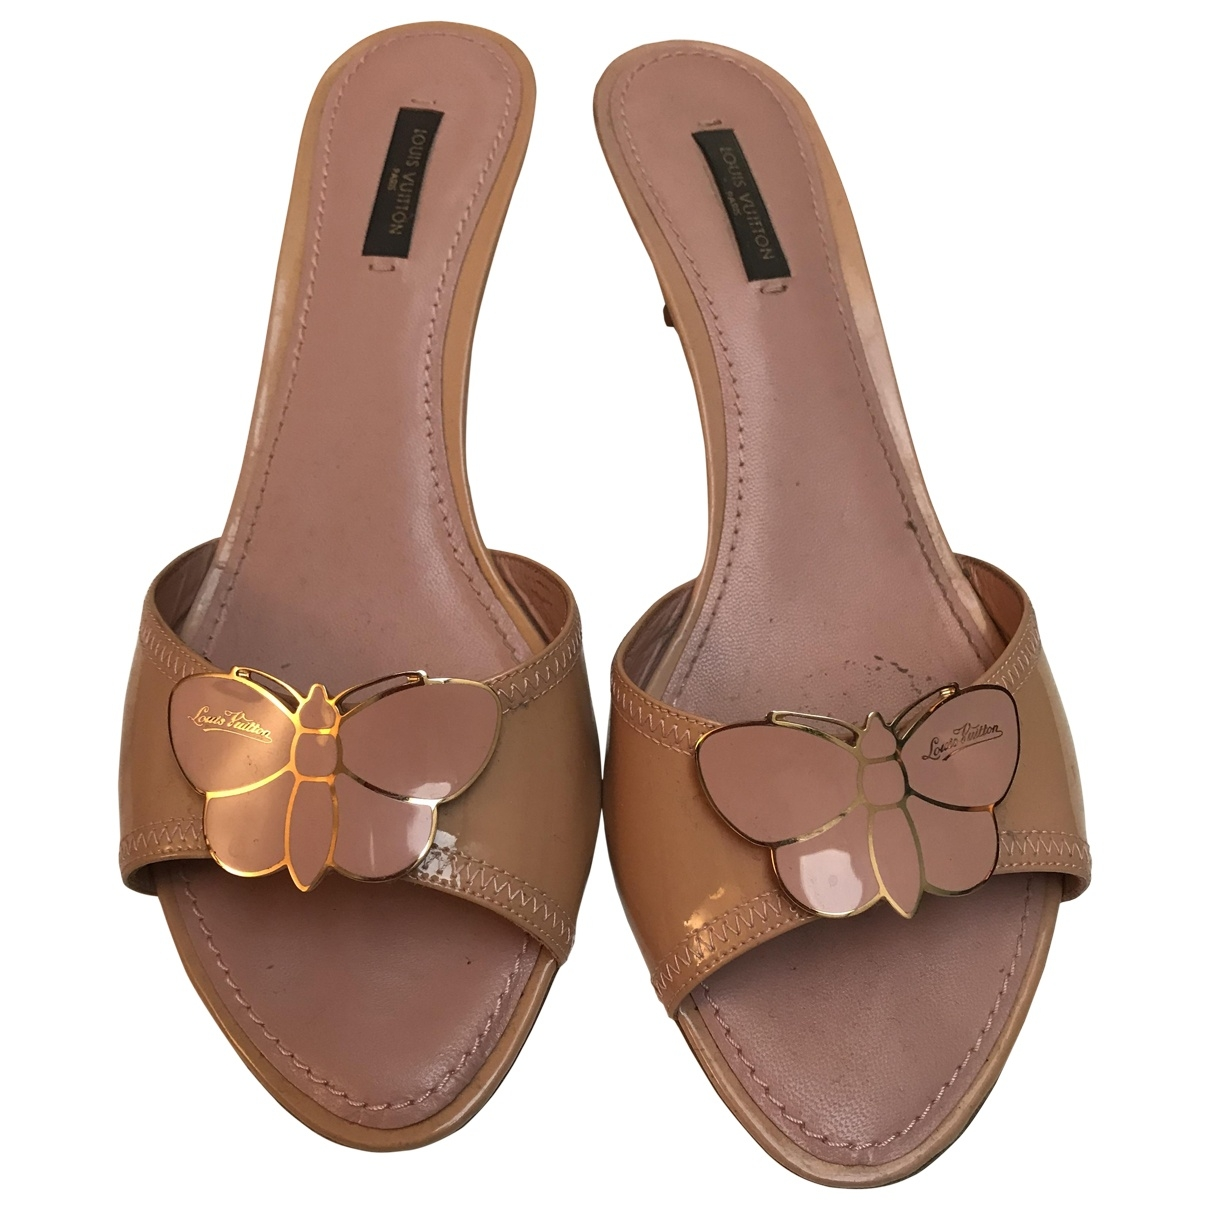 Louis Vuitton \N Pink Patent leather Sandals for Women 39 EU